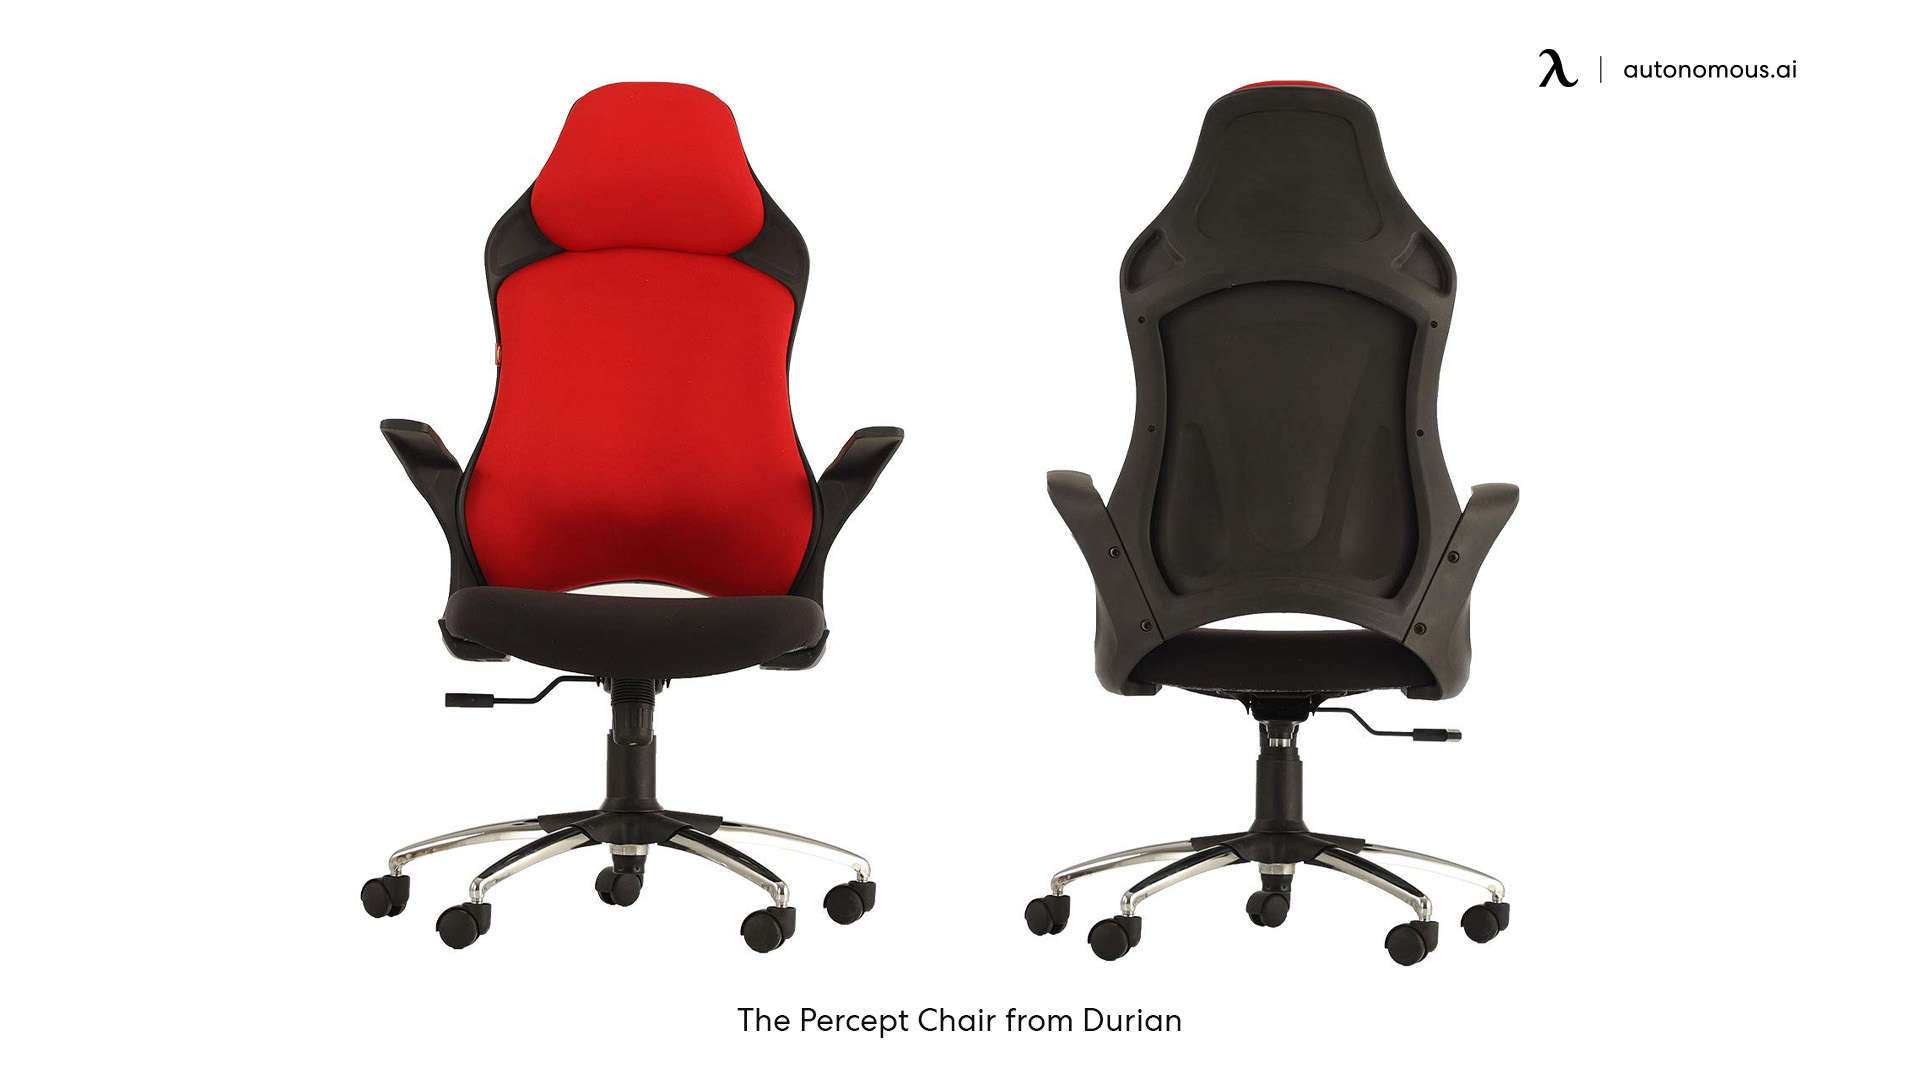 The Percept Chair from Durian